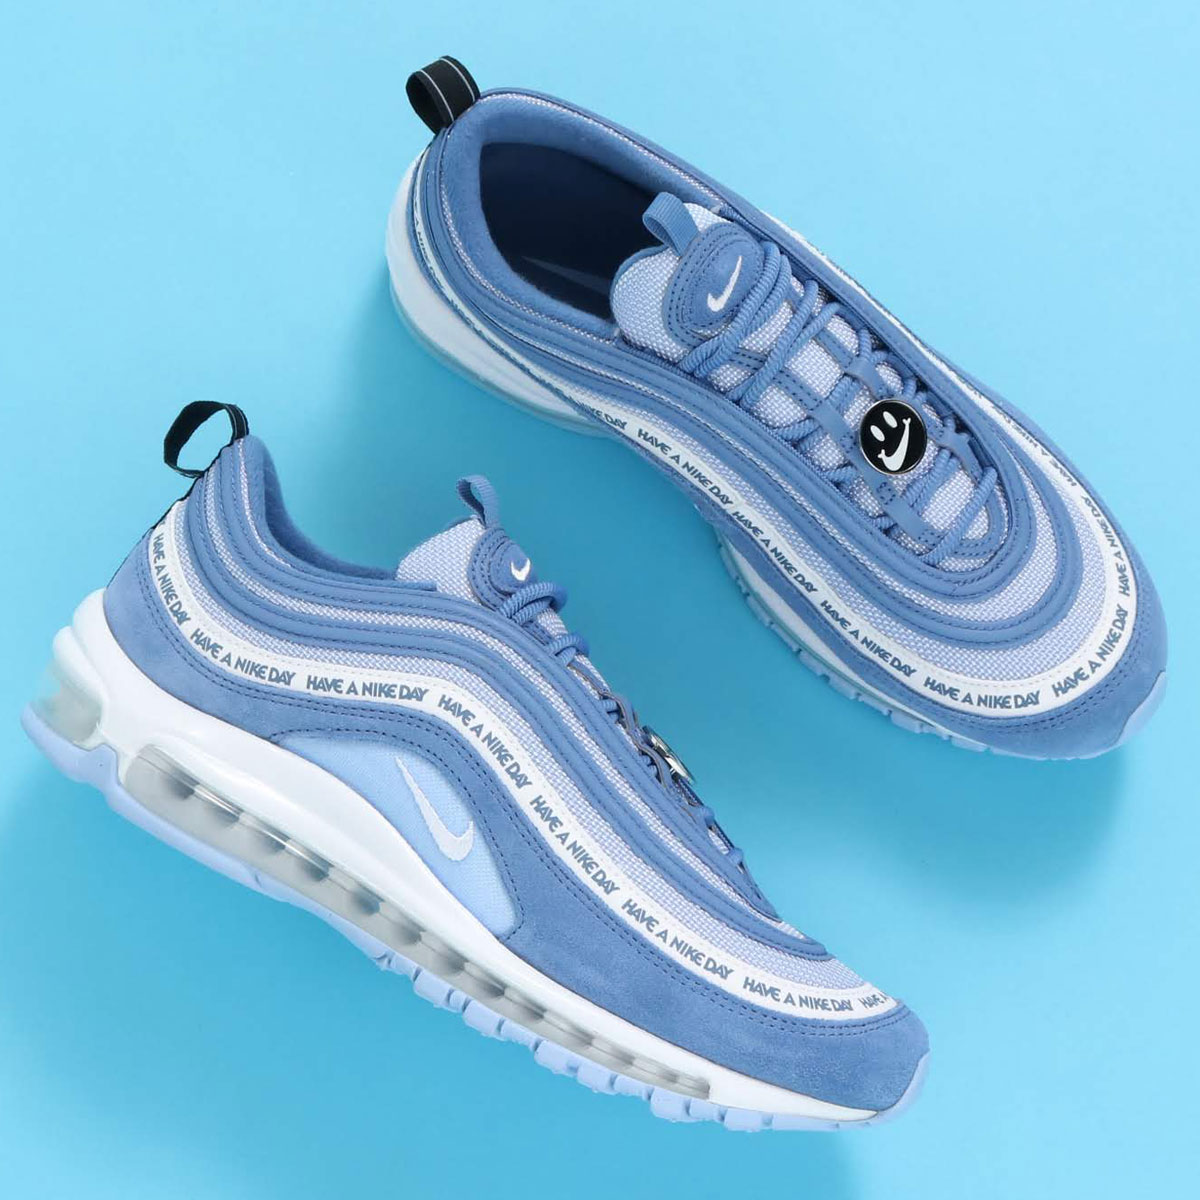 Nike Air Max 97 Premium Blue Hero Nike 312834 401